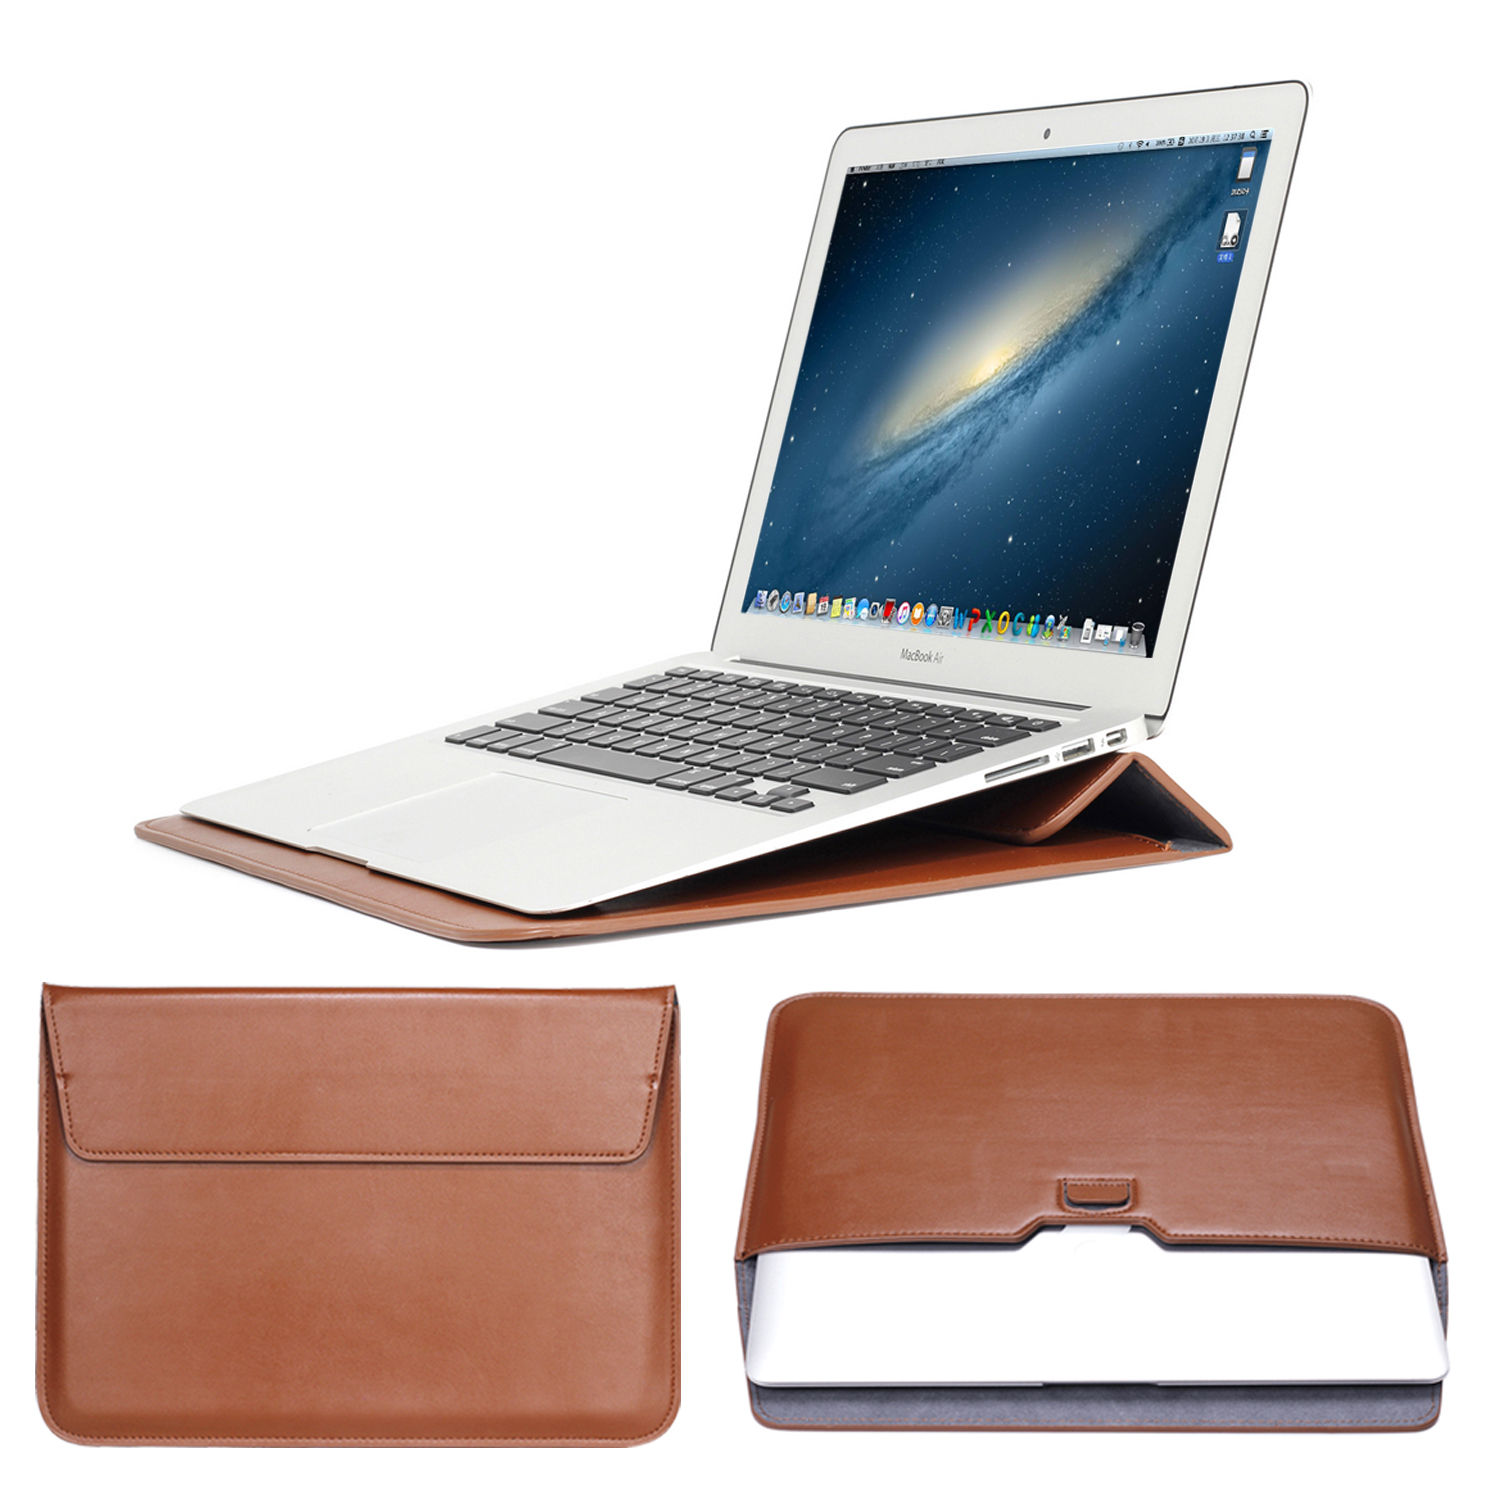 PU Leather Mail sack Sleeve Bag Case Stand For Macbook Air Pro Retina 11 12 13 15 Notebook Laptop Cover For Mac book 13.3 inch retro envelope leather laptop bag for macbook pro 13 15 retina for mac book air 11 13 inch notebook case handbag for men women